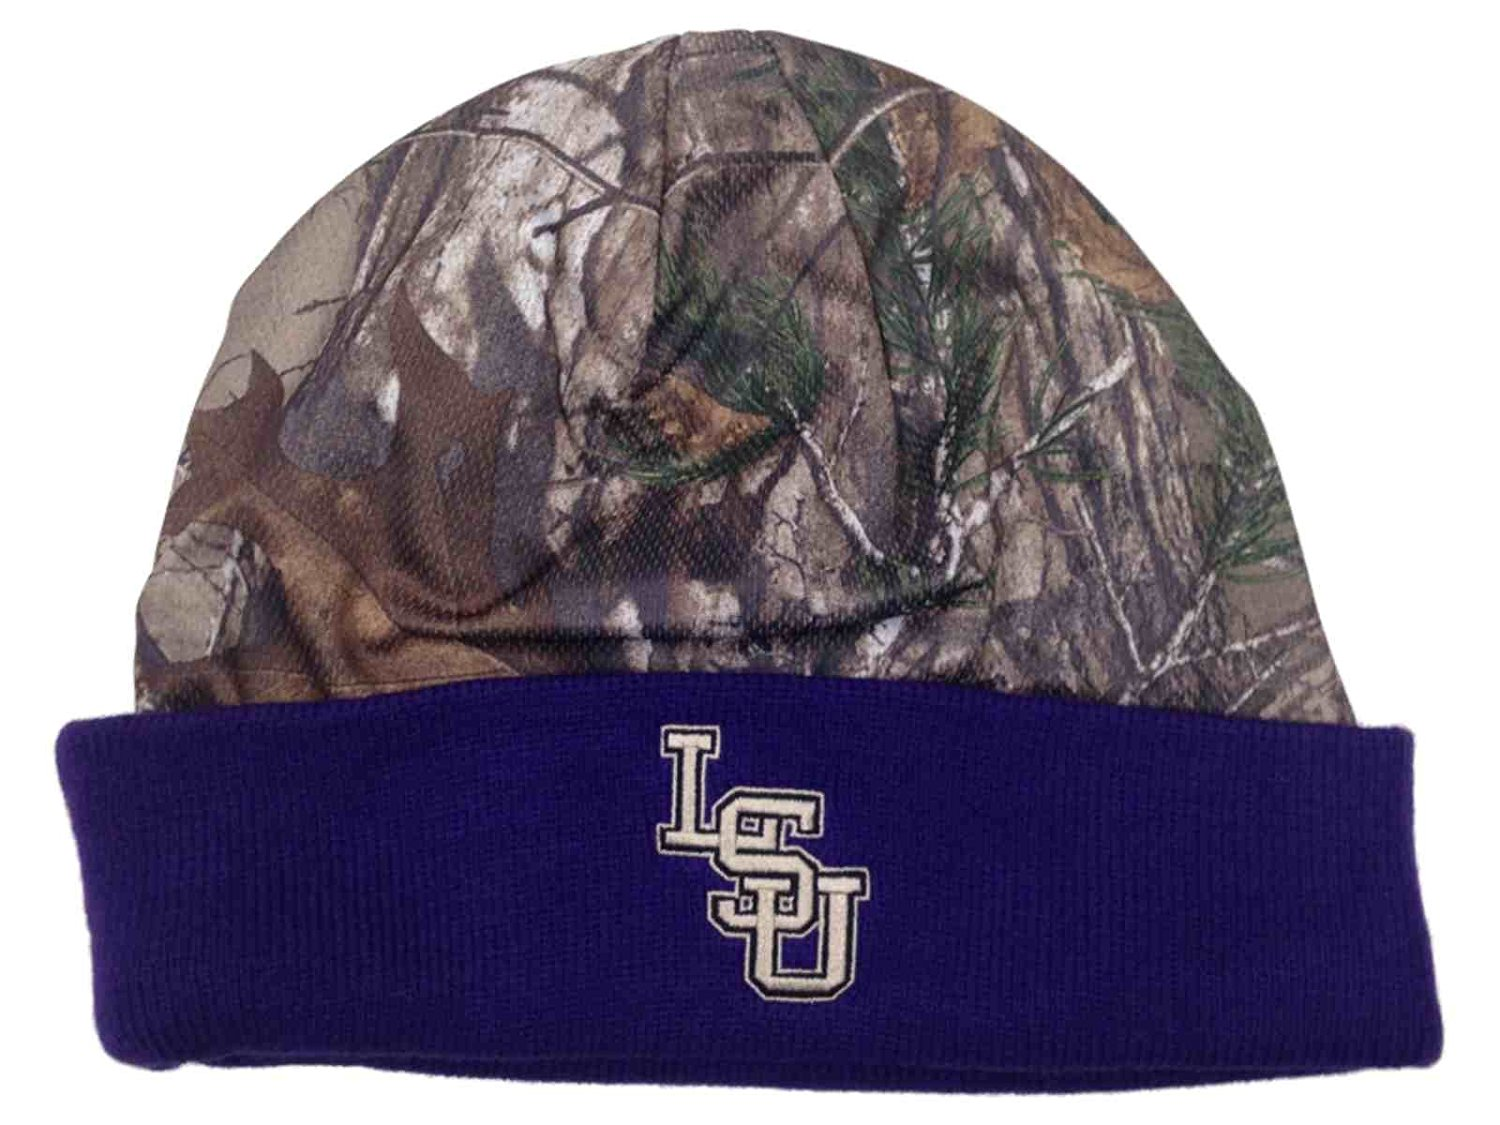 fe906402ce6198 Get Quotations · LSU Tigers TOW Realtree Camo Purple RT Cool Cuffed Knit Hat  Cap Winter Beanie